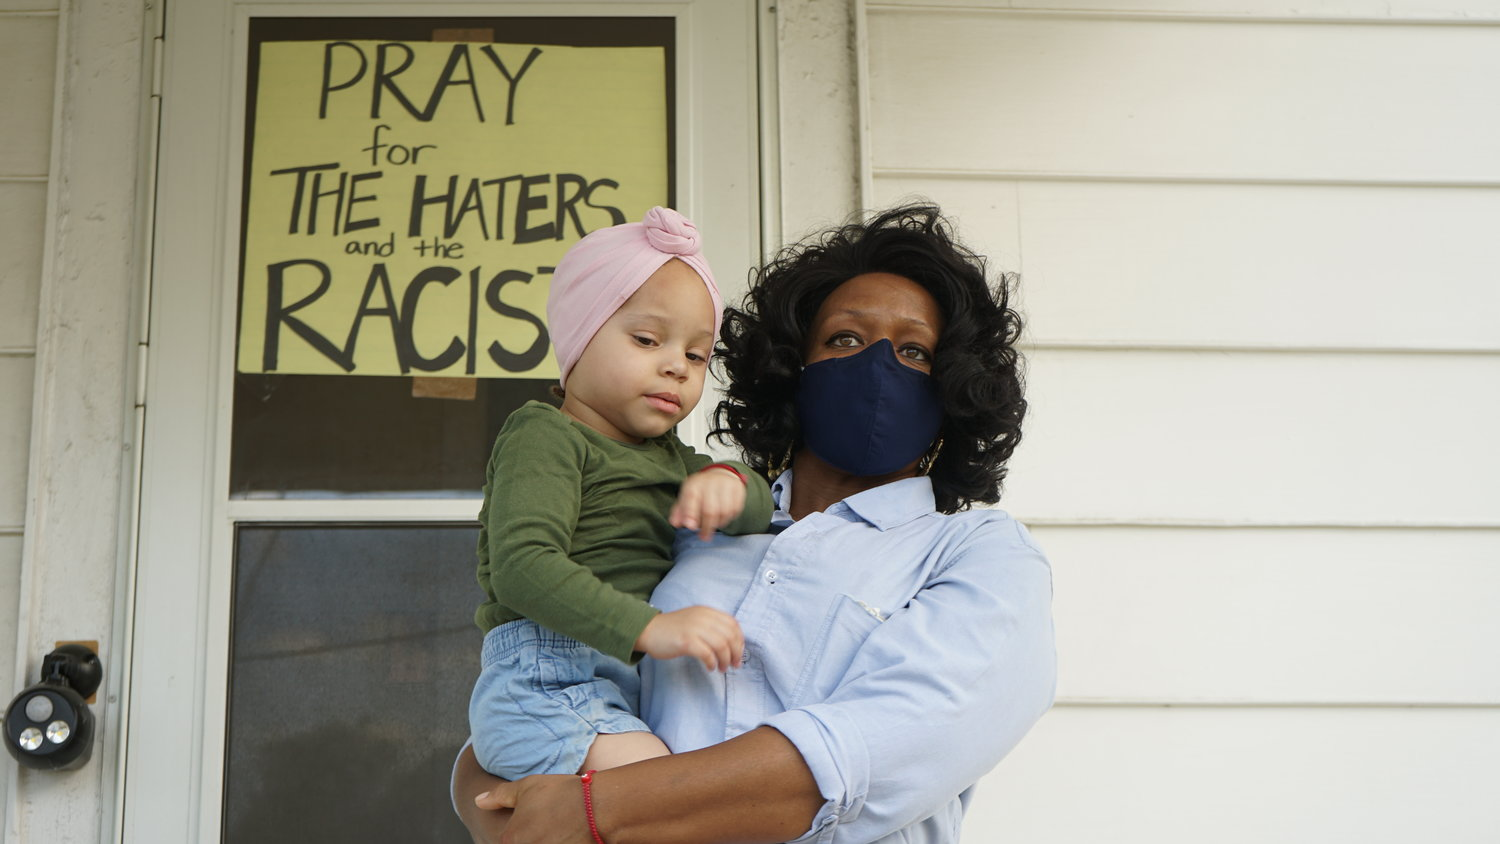 Valley Streamer Jennifer McLeggan with her daughter Immaculate. For the past three years she said she has suffered racially motivated harassment from a trio of neighbors.